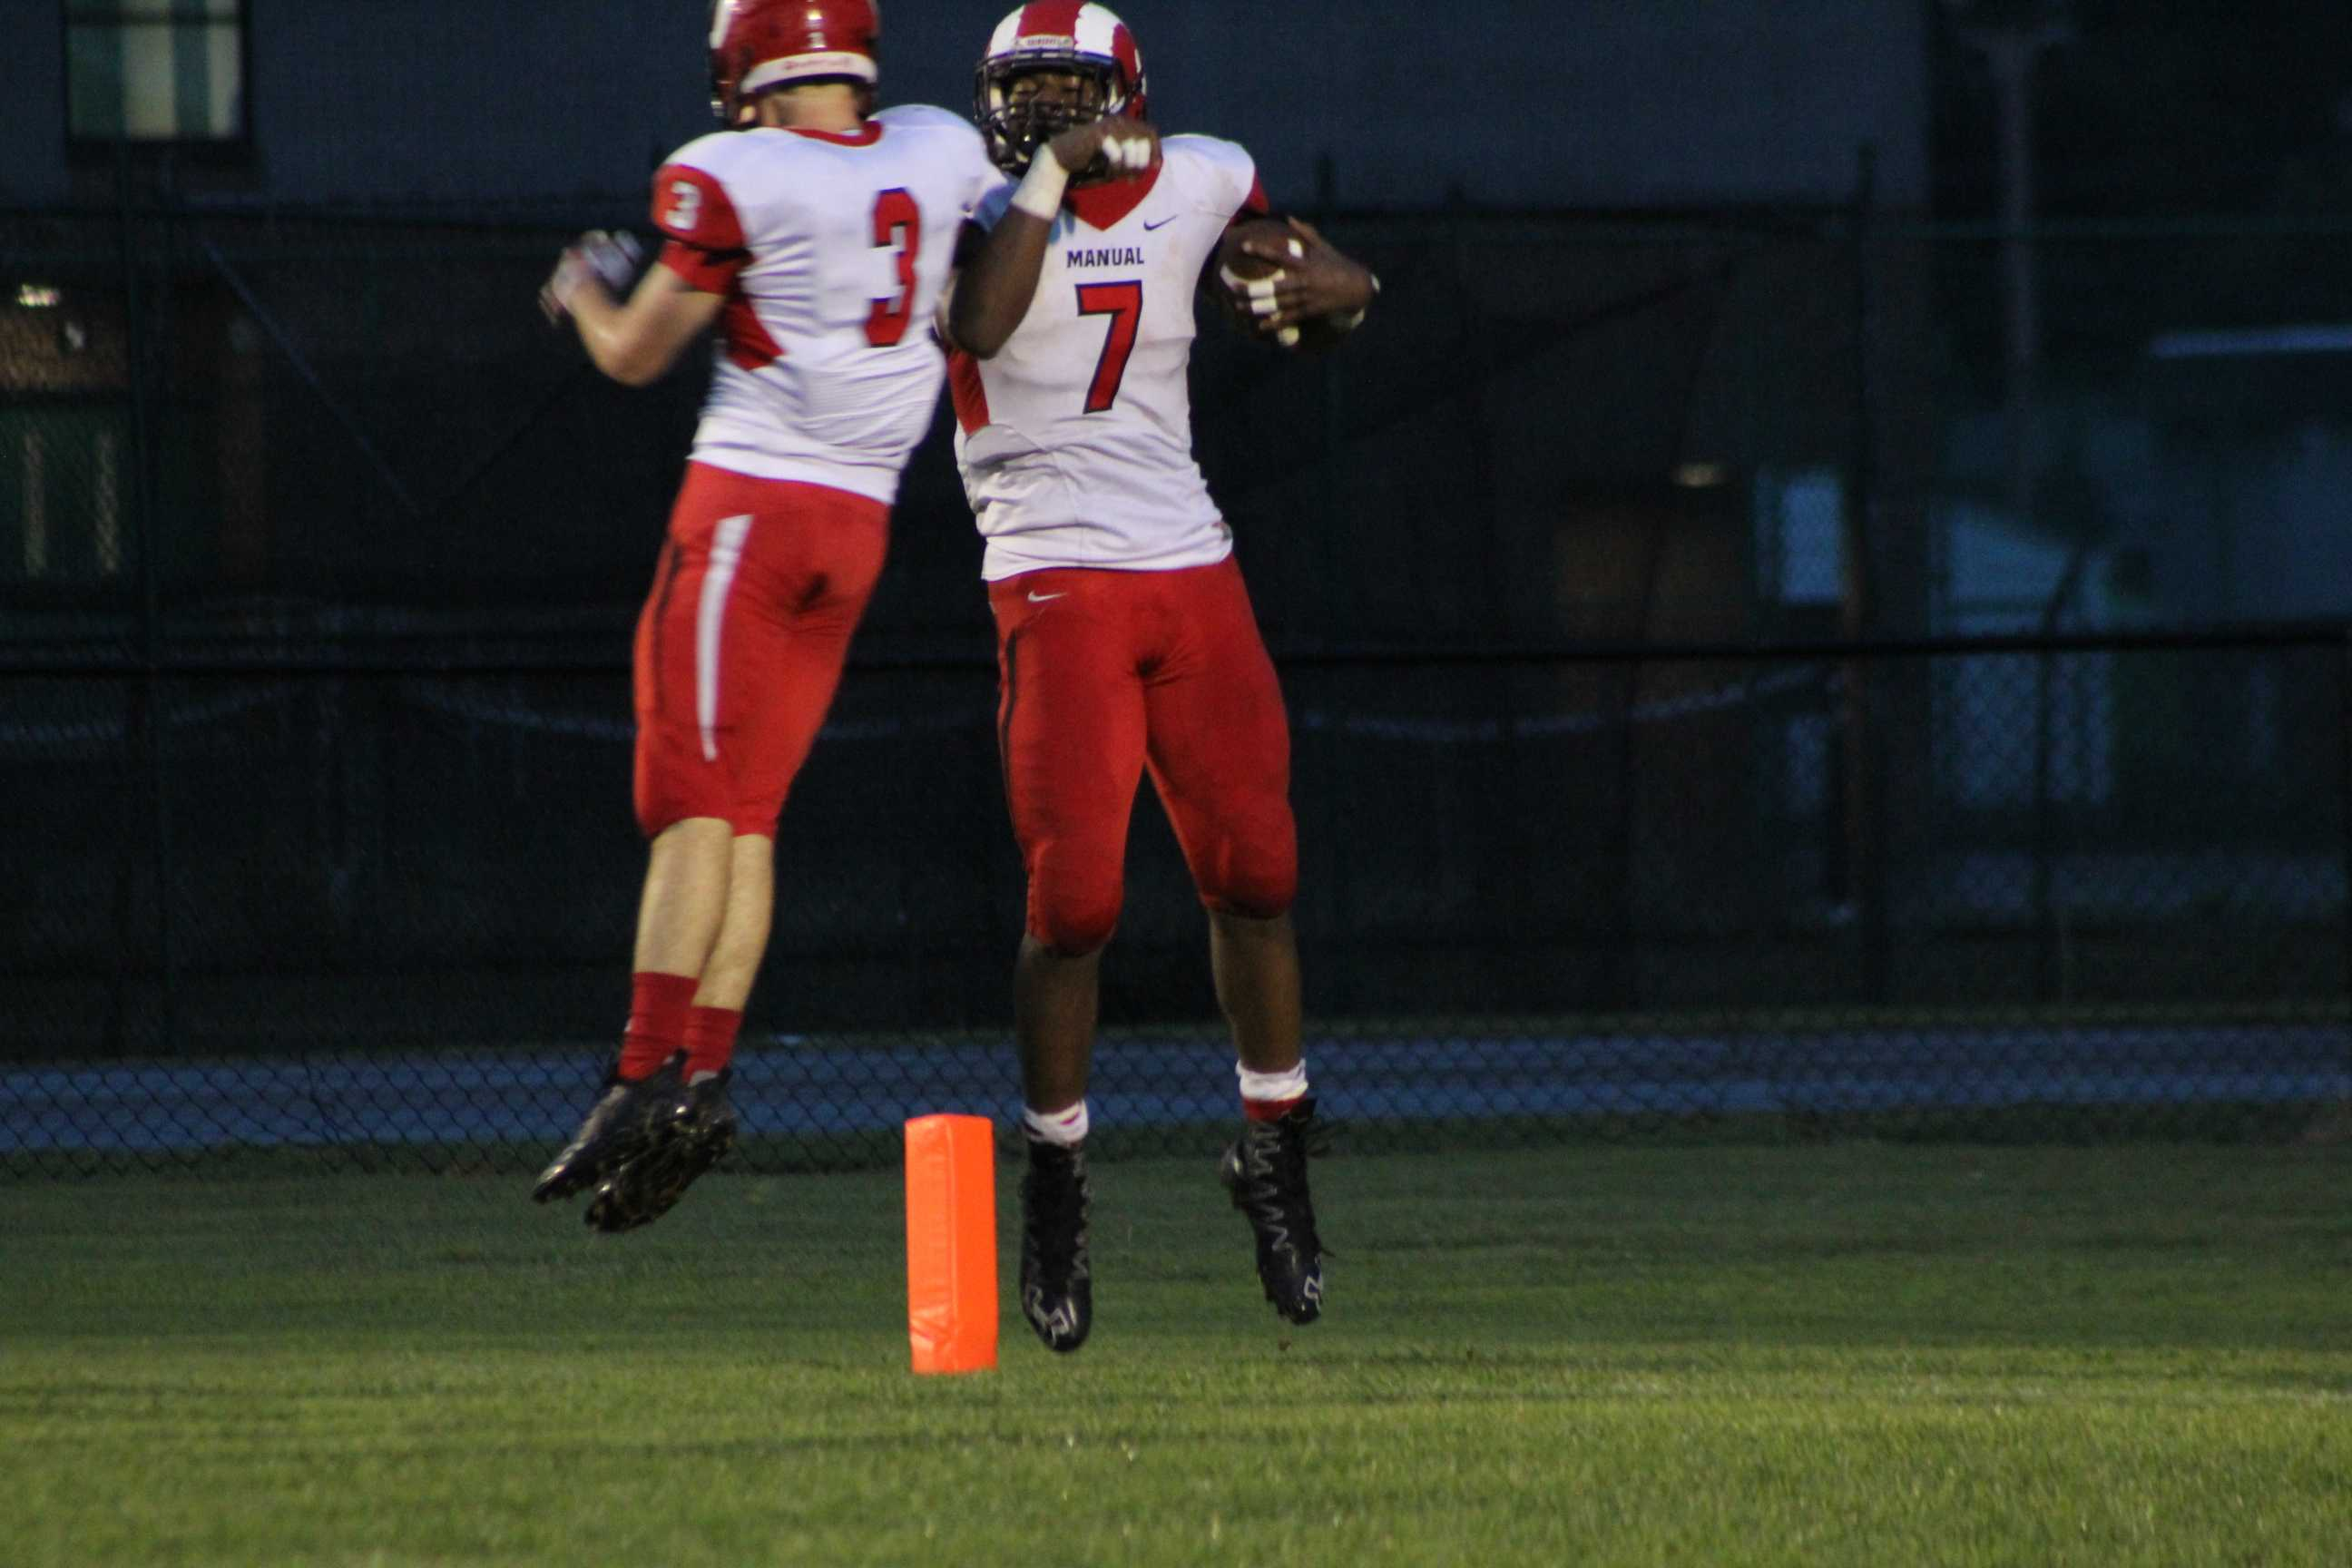 Two Manual football players celebrate after a touchdown. Photo by Maya Joshi.